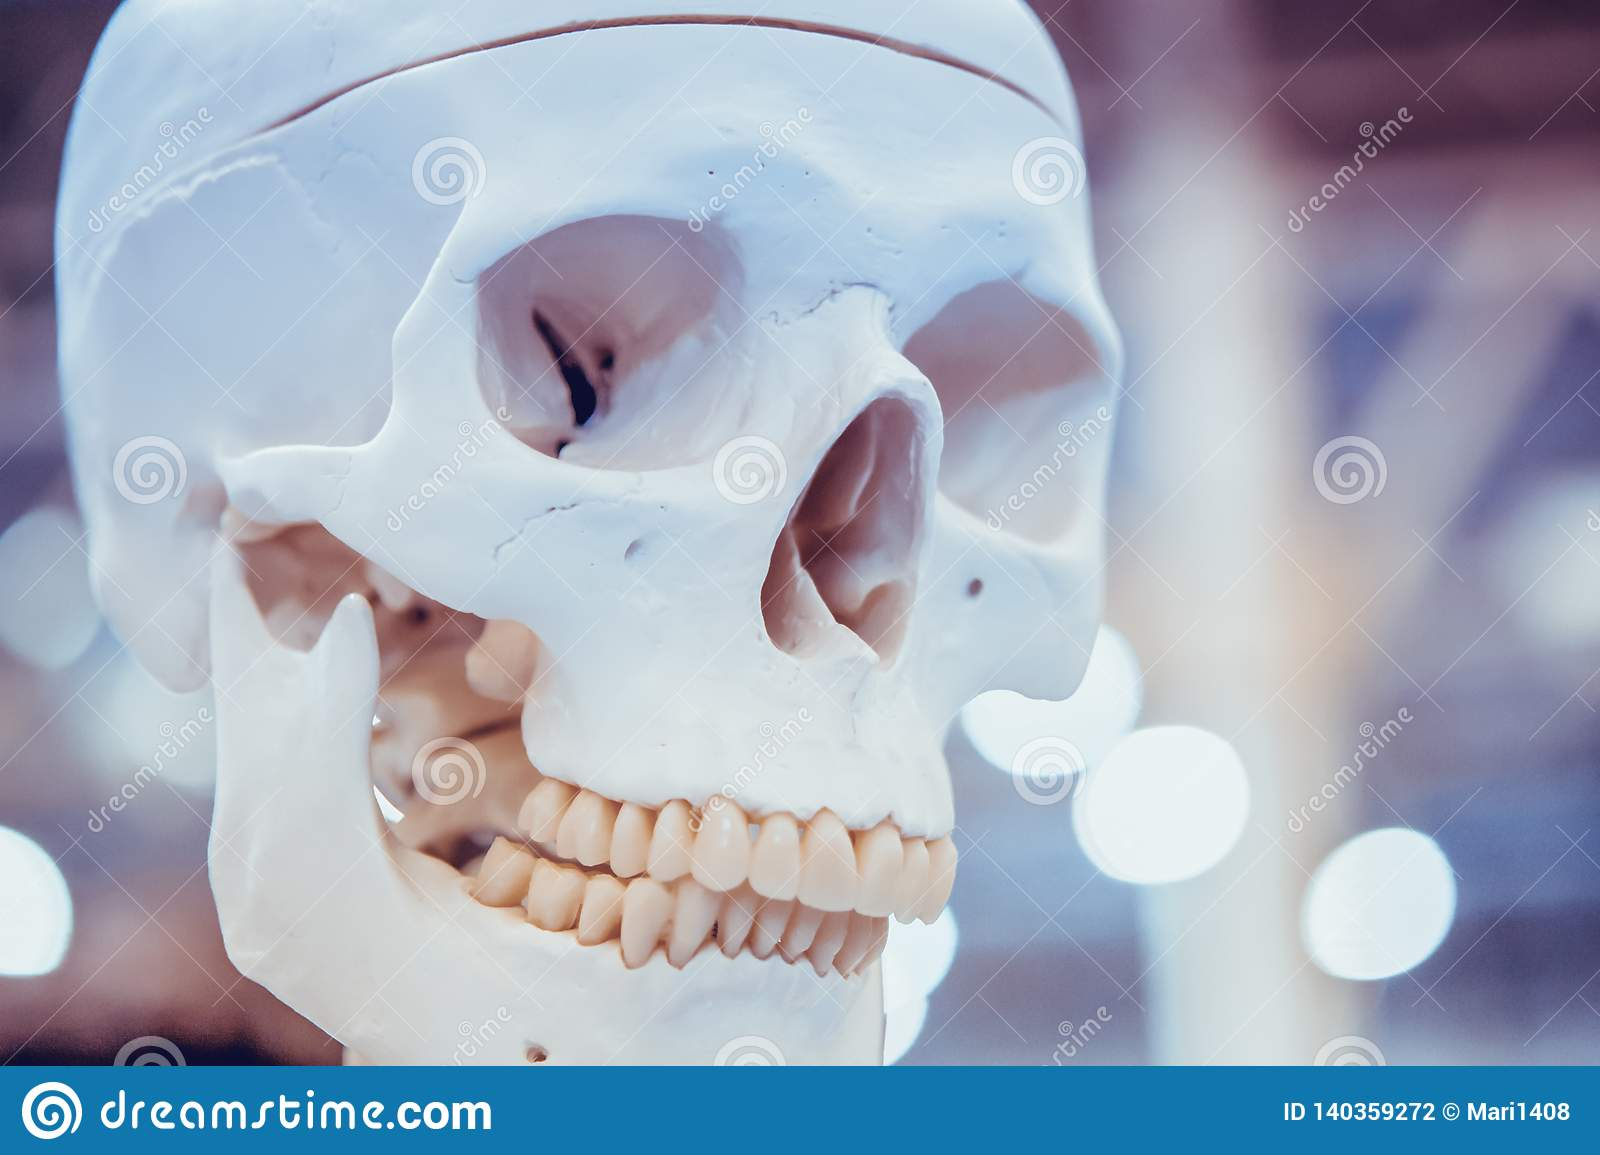 White layout human skull closeup, medical exhibit